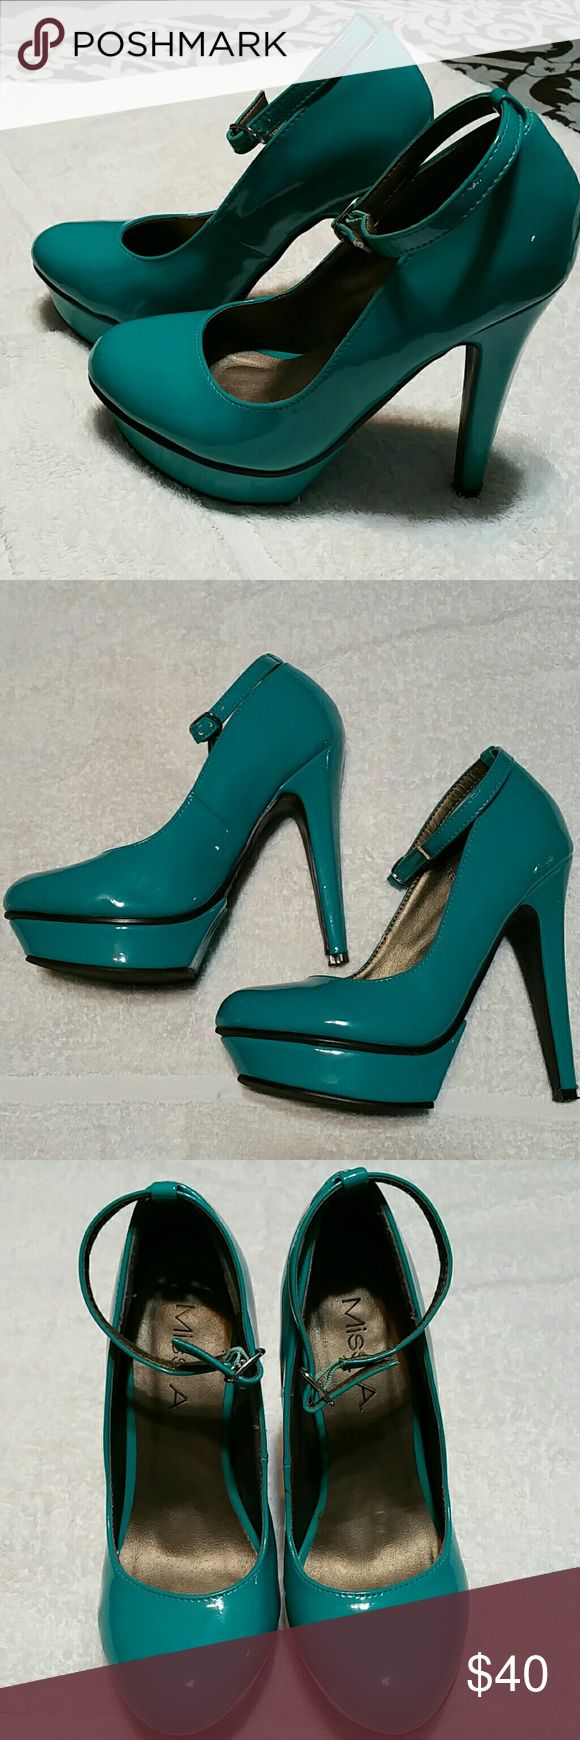 Miss A. Teal high heels with strap Miss A. Teal platform heels with strap.  In good condition, with a couple marks/scratches noted in pictures.  These are unbelievably sexy heels and very hard to find especially in this color.  Take these heels out on a night on the town. They don't belong just sitting in the closet never worn.. Miss A. Shoes Heels